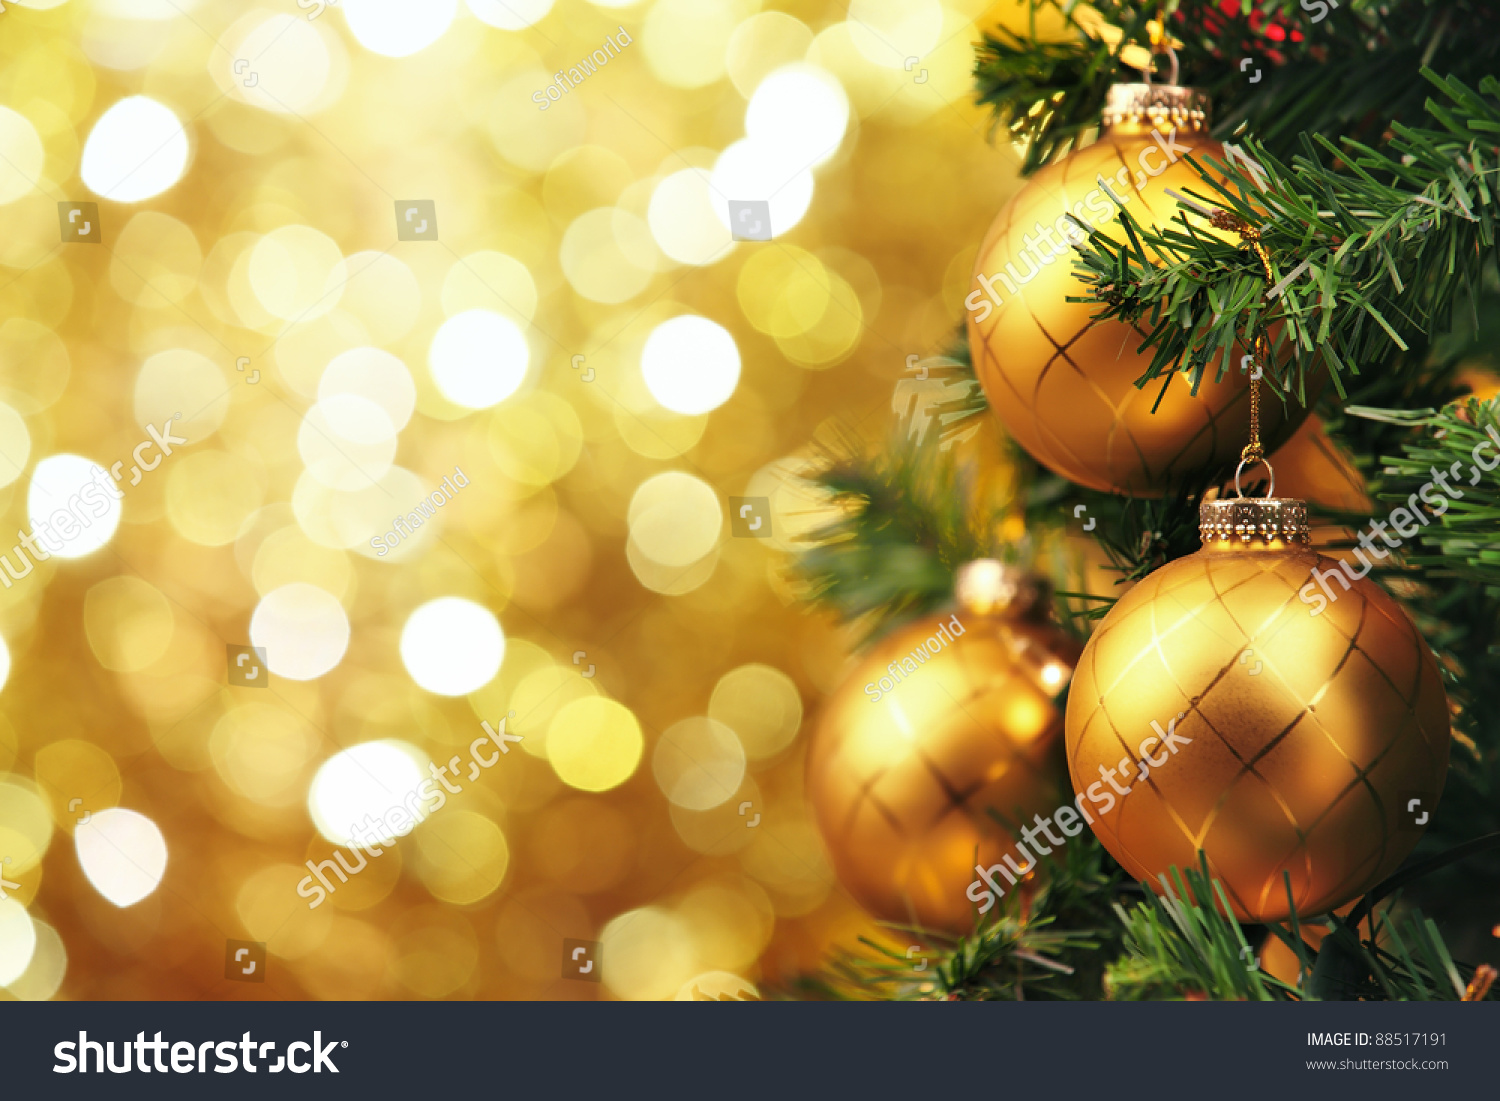 The Christmas Tree Online